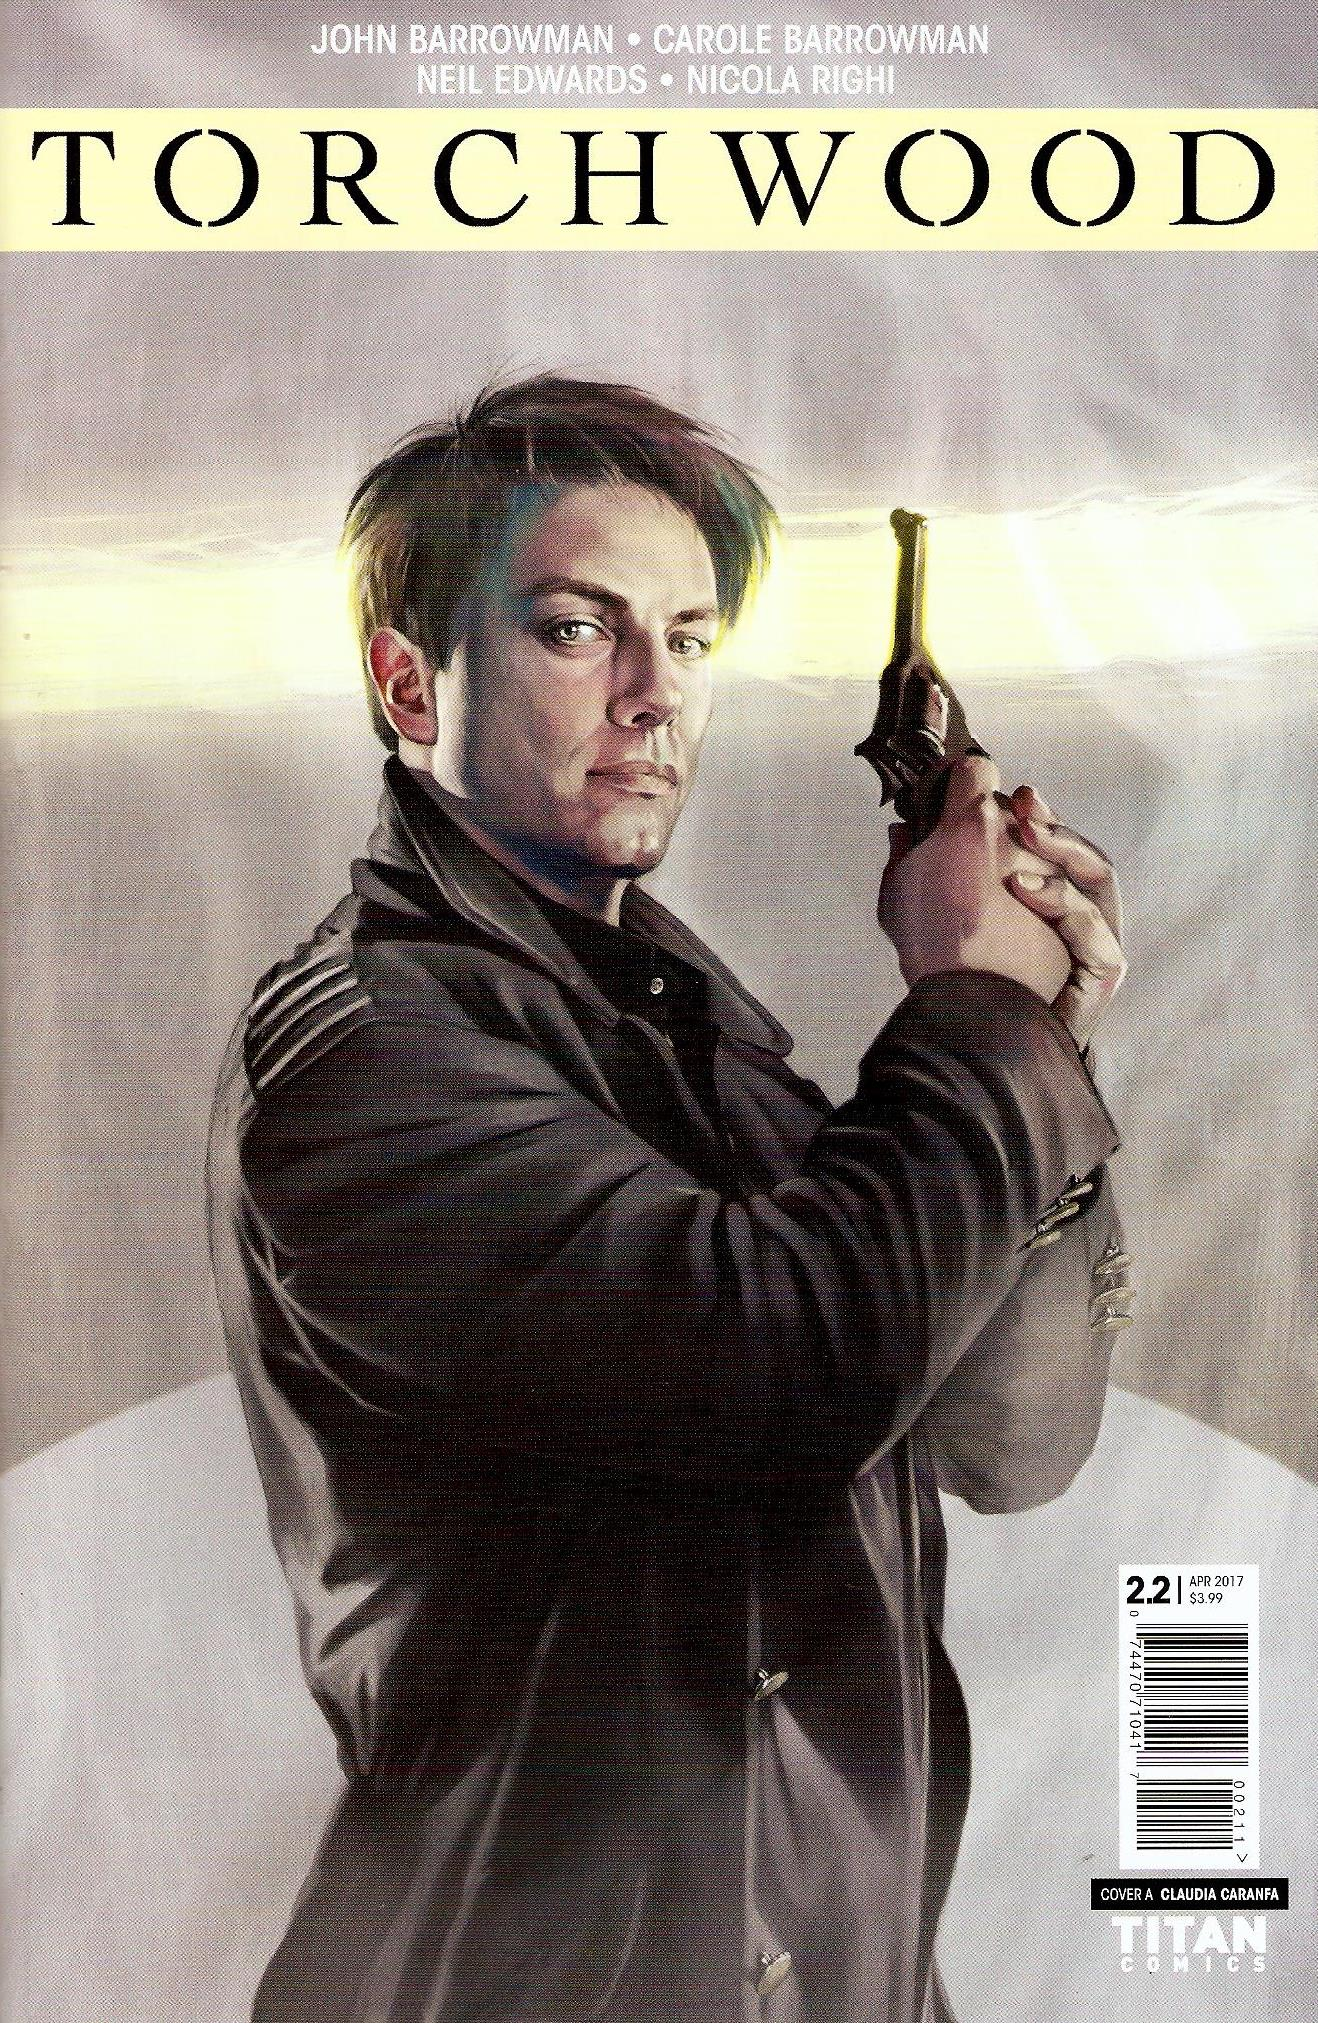 Torchwood 2 issue 2a